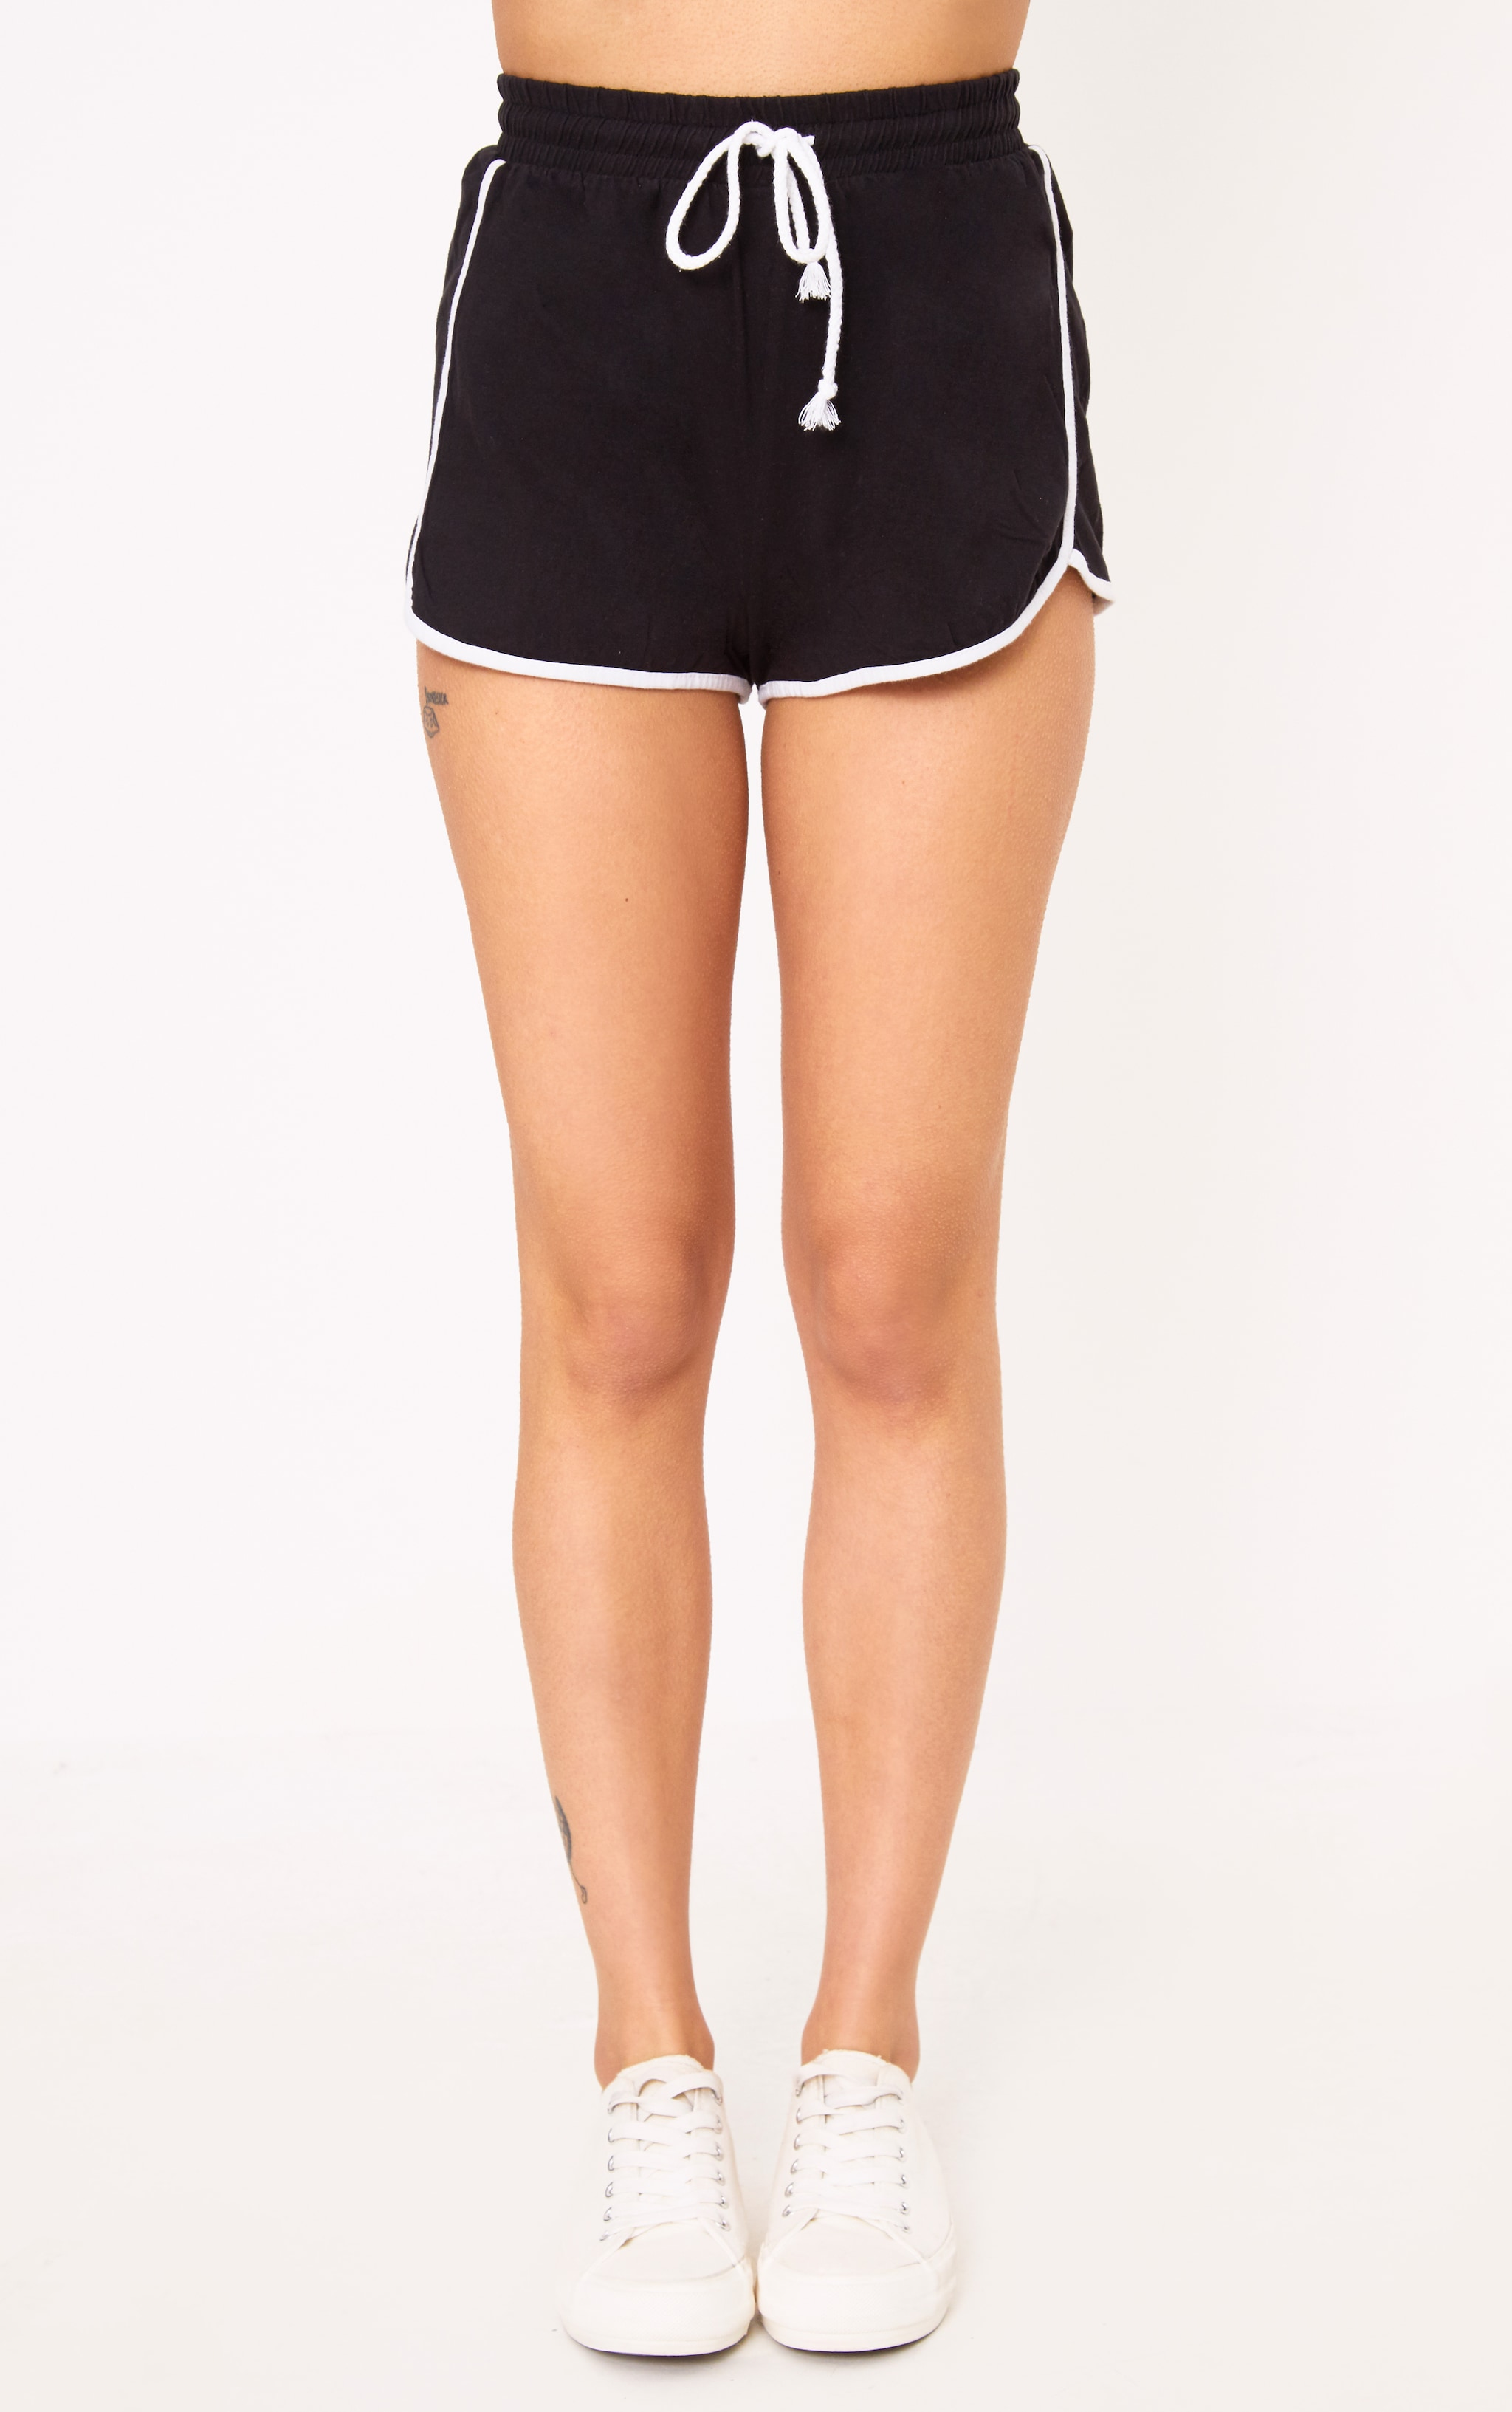 Black Contrast Binding Runner Shorts 2